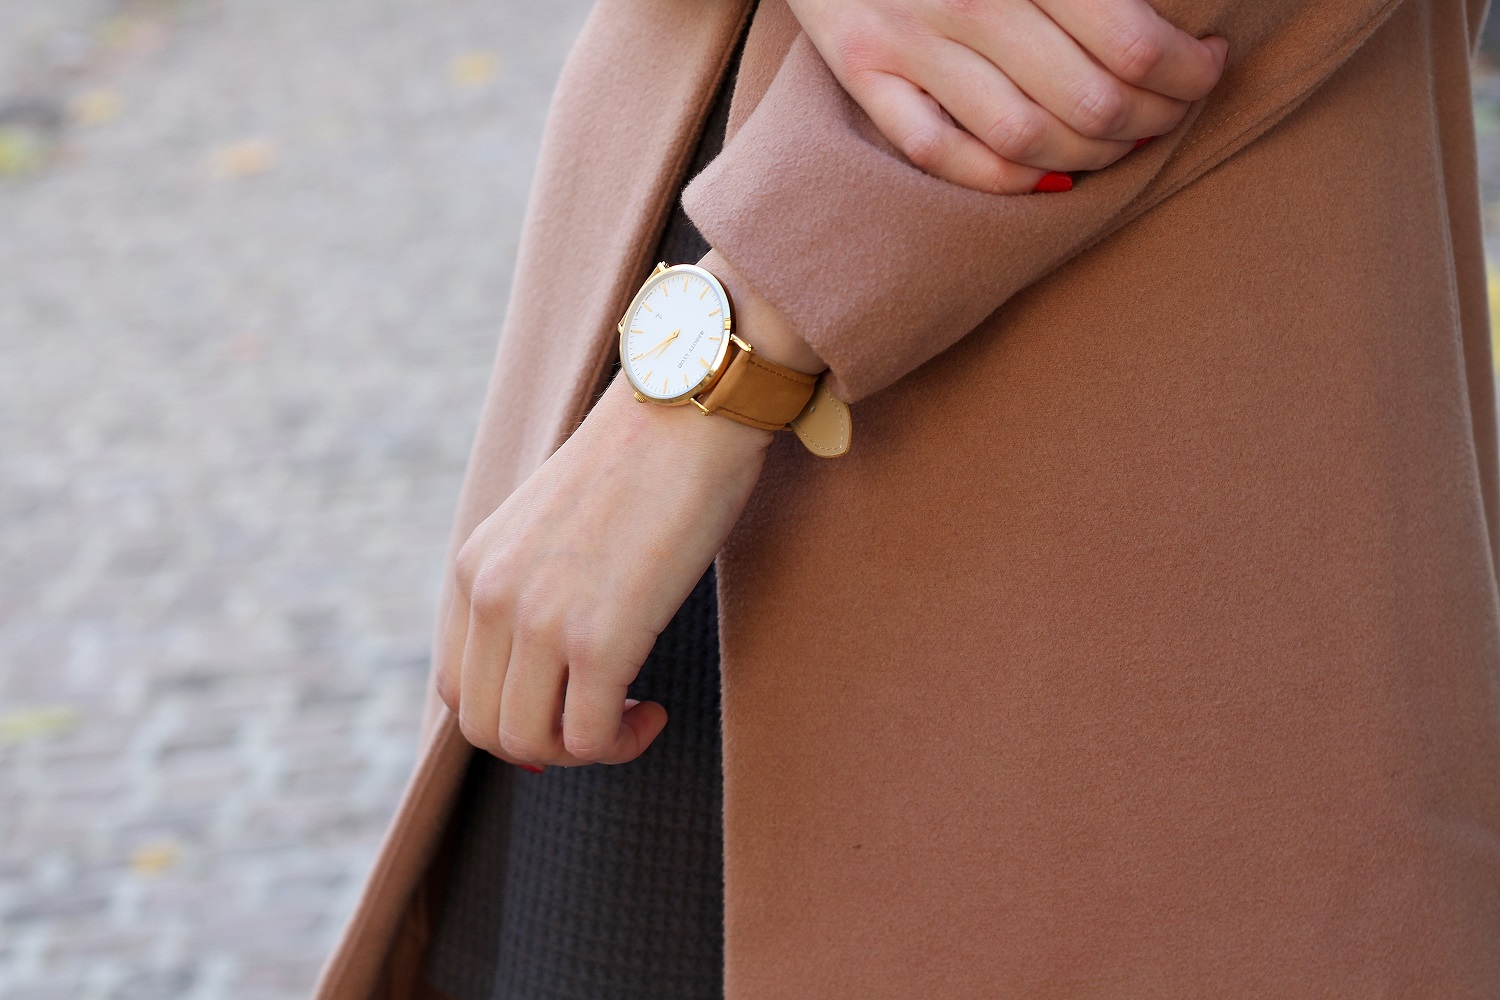 peexo fashion blogger wearing abbott lyon watch